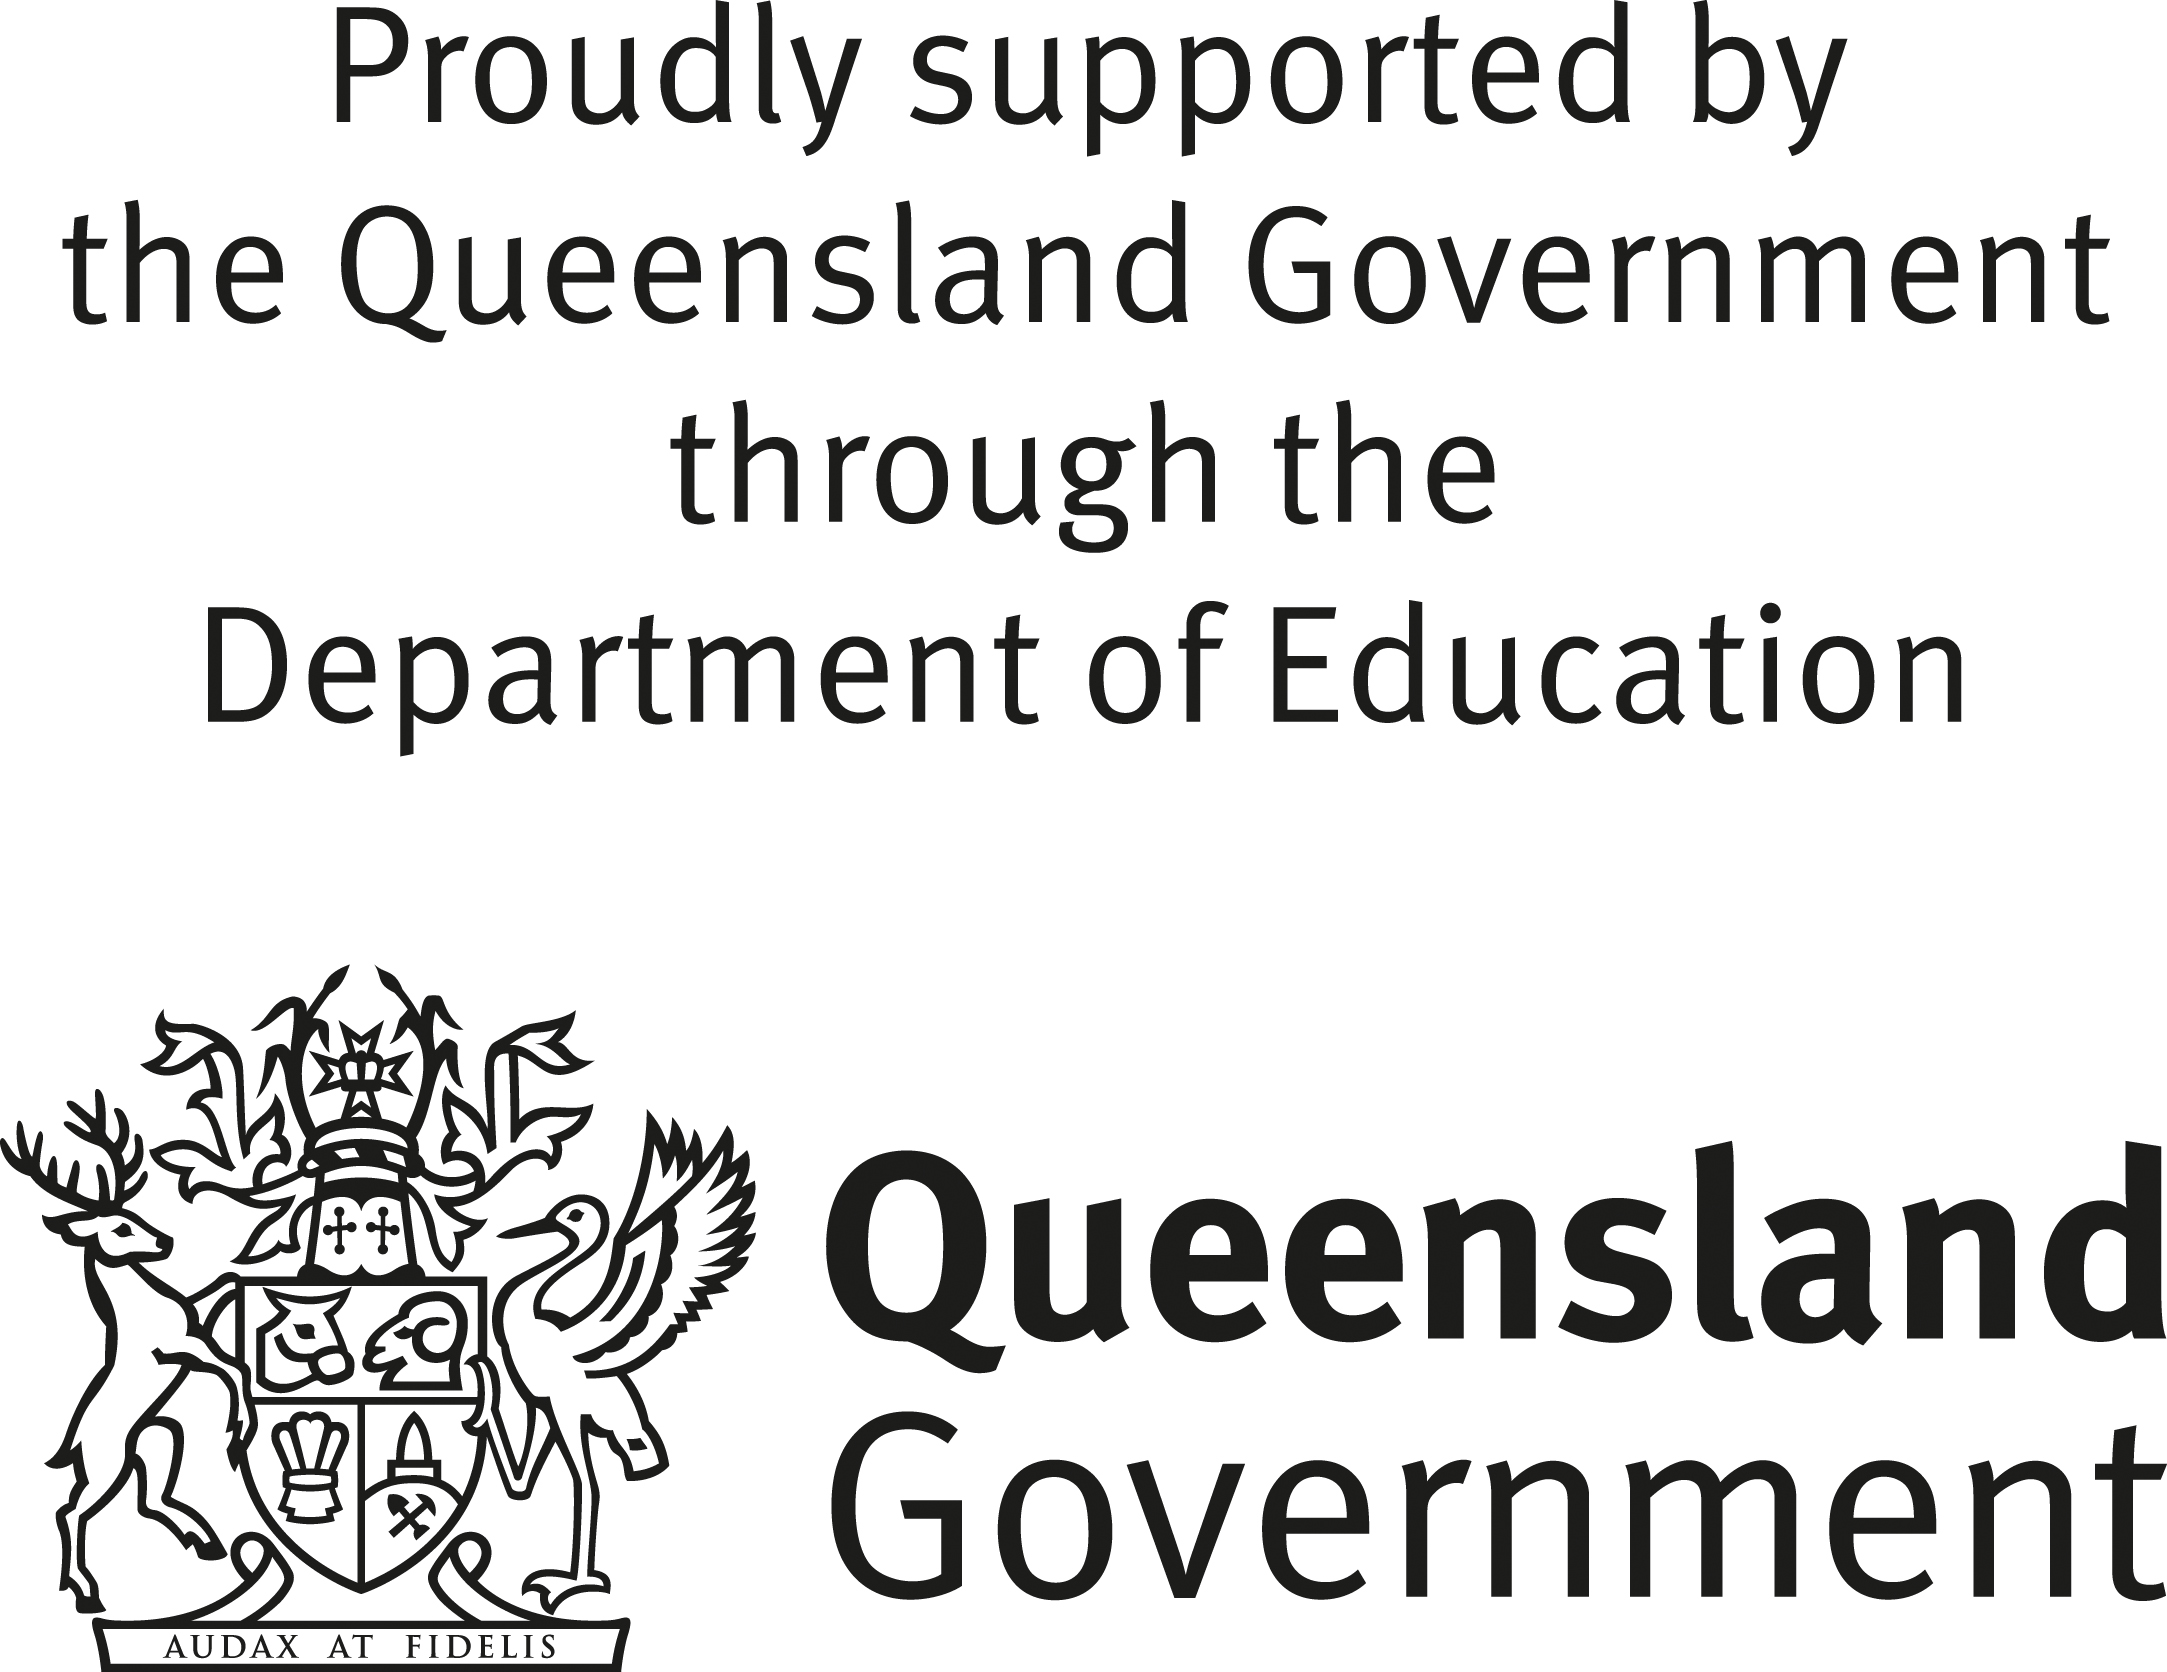 Proudly supported by the Queensland Government through the Department of Education.jpg